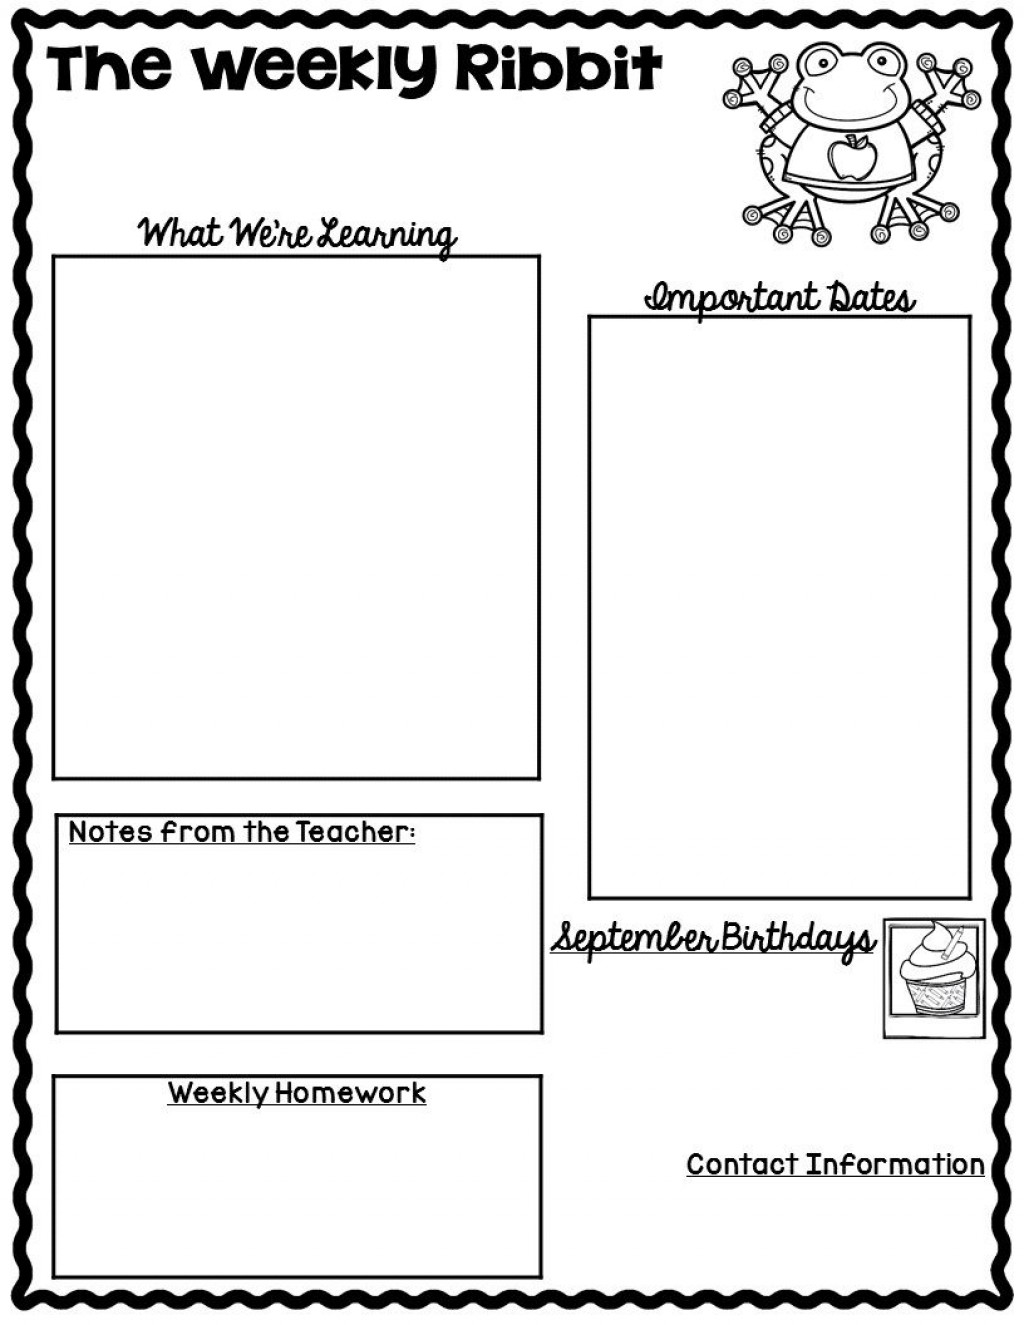 009 Top Newsletter Template For Teacher Highest Quality  Teachers To Parent Printable Free SchoolLarge